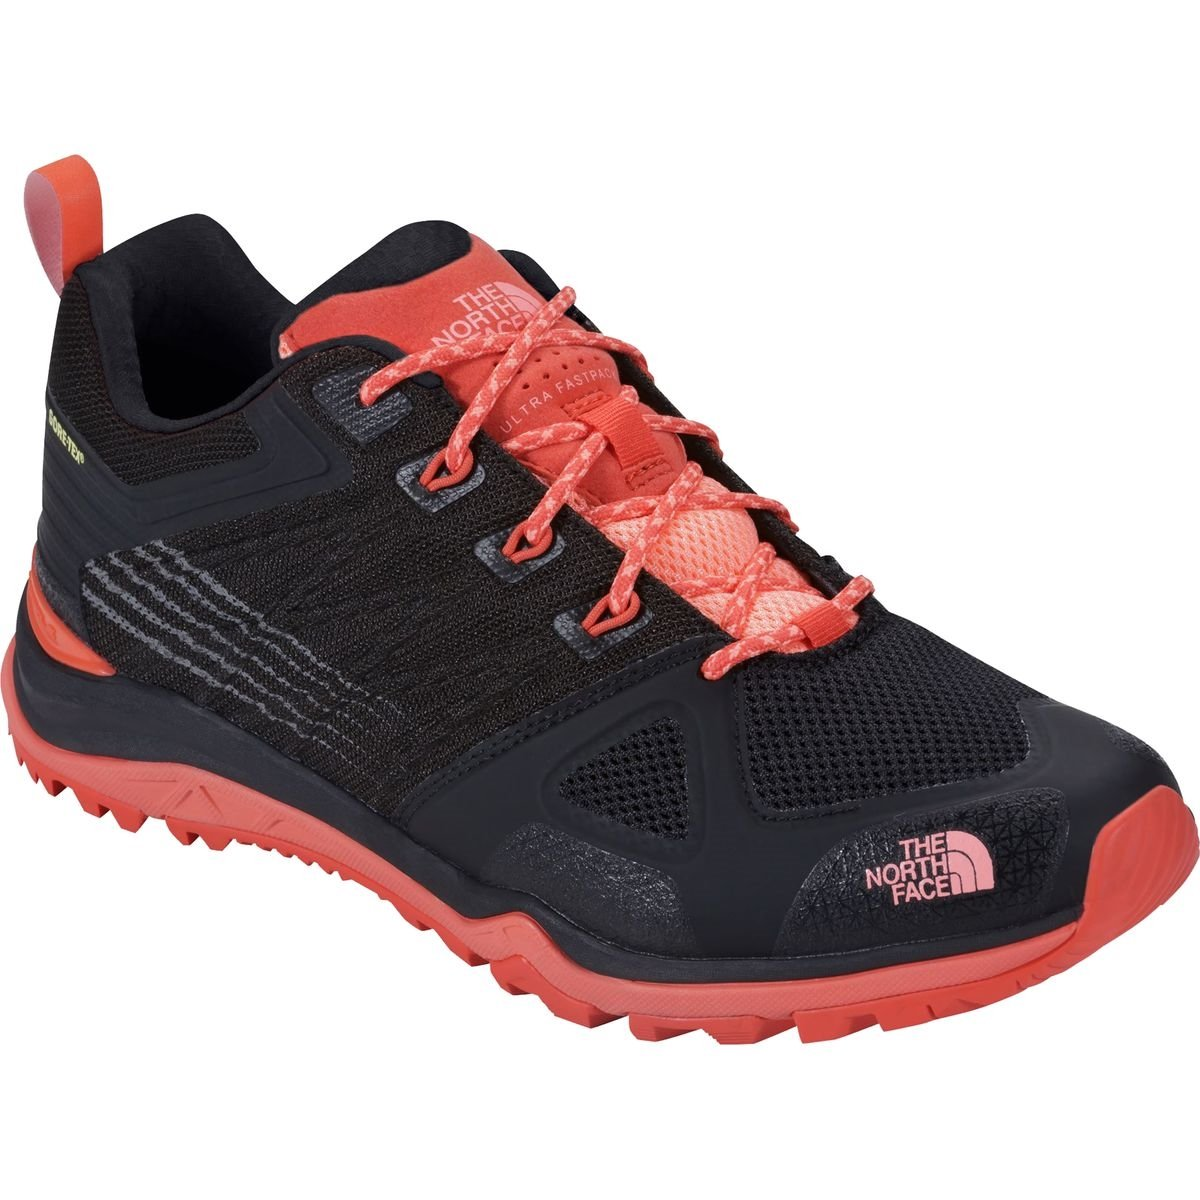 North Face Women's Ultra Fastpack Ii Gore-Tex Shoes